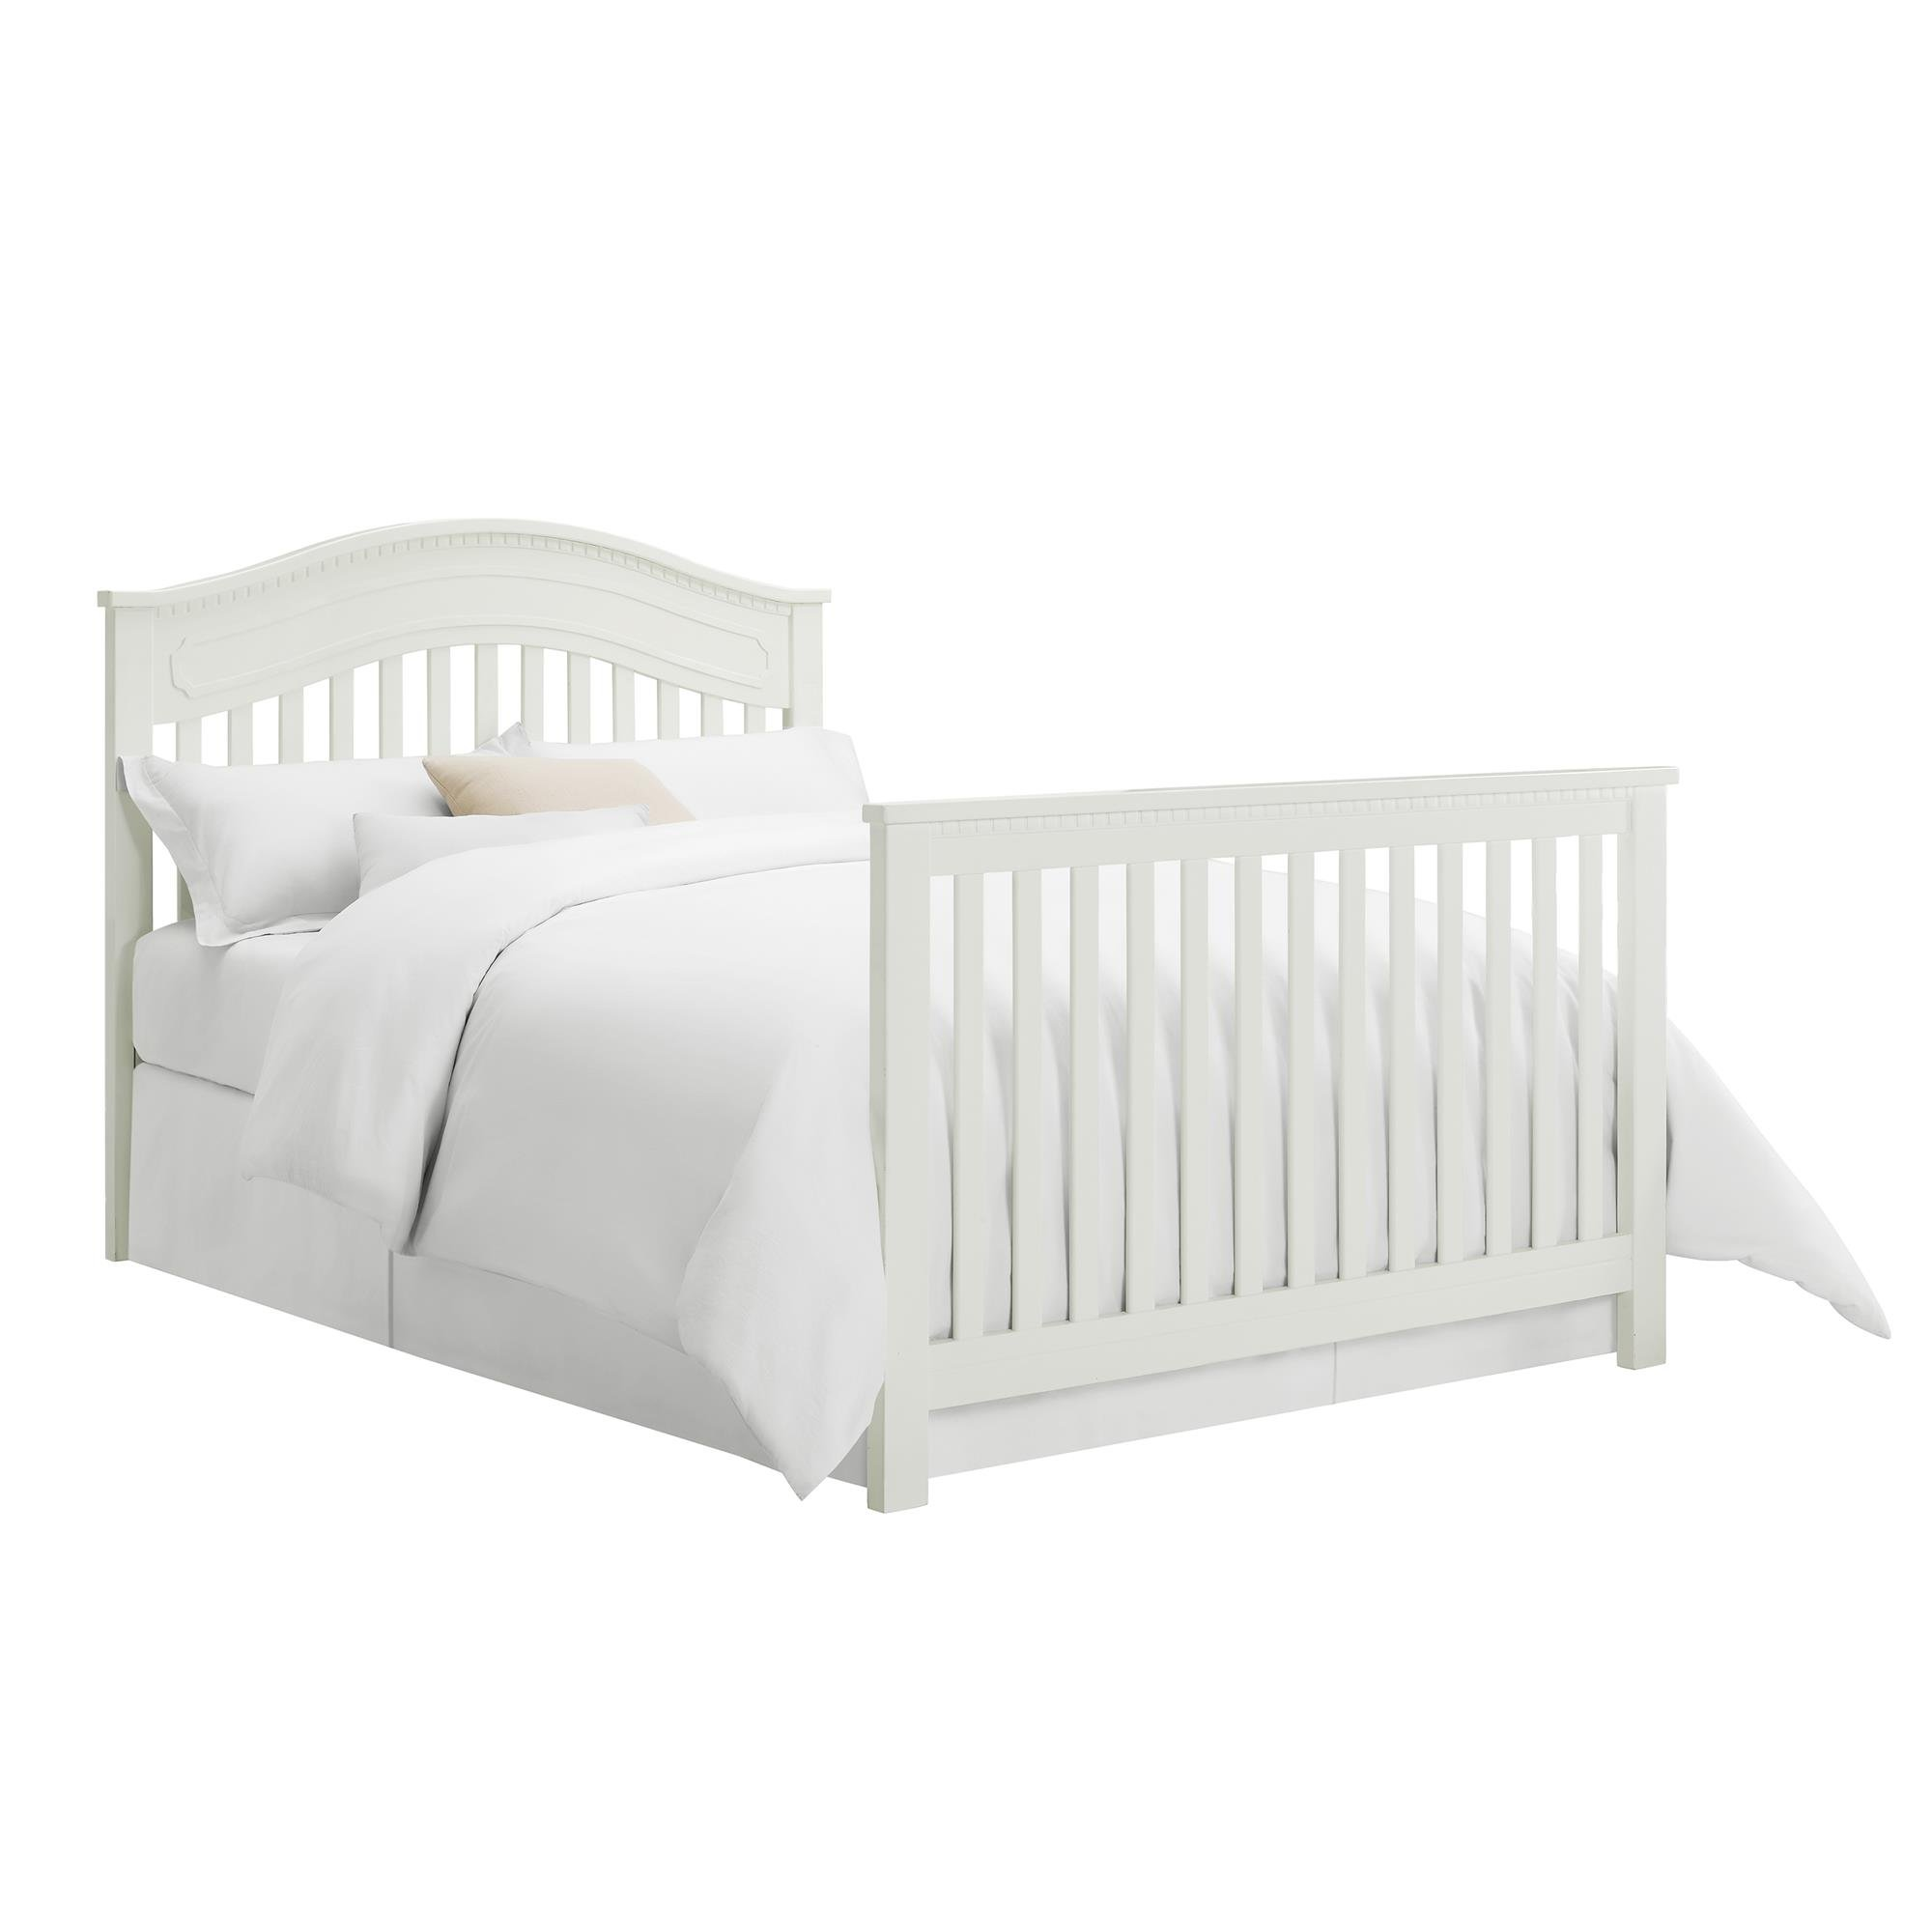 Full Size Conversion Kit Bed Rails for Baby Relax Edgemont, Miles & Rivers Cribs by Dorel Living - White by CC KITS (Image #6)